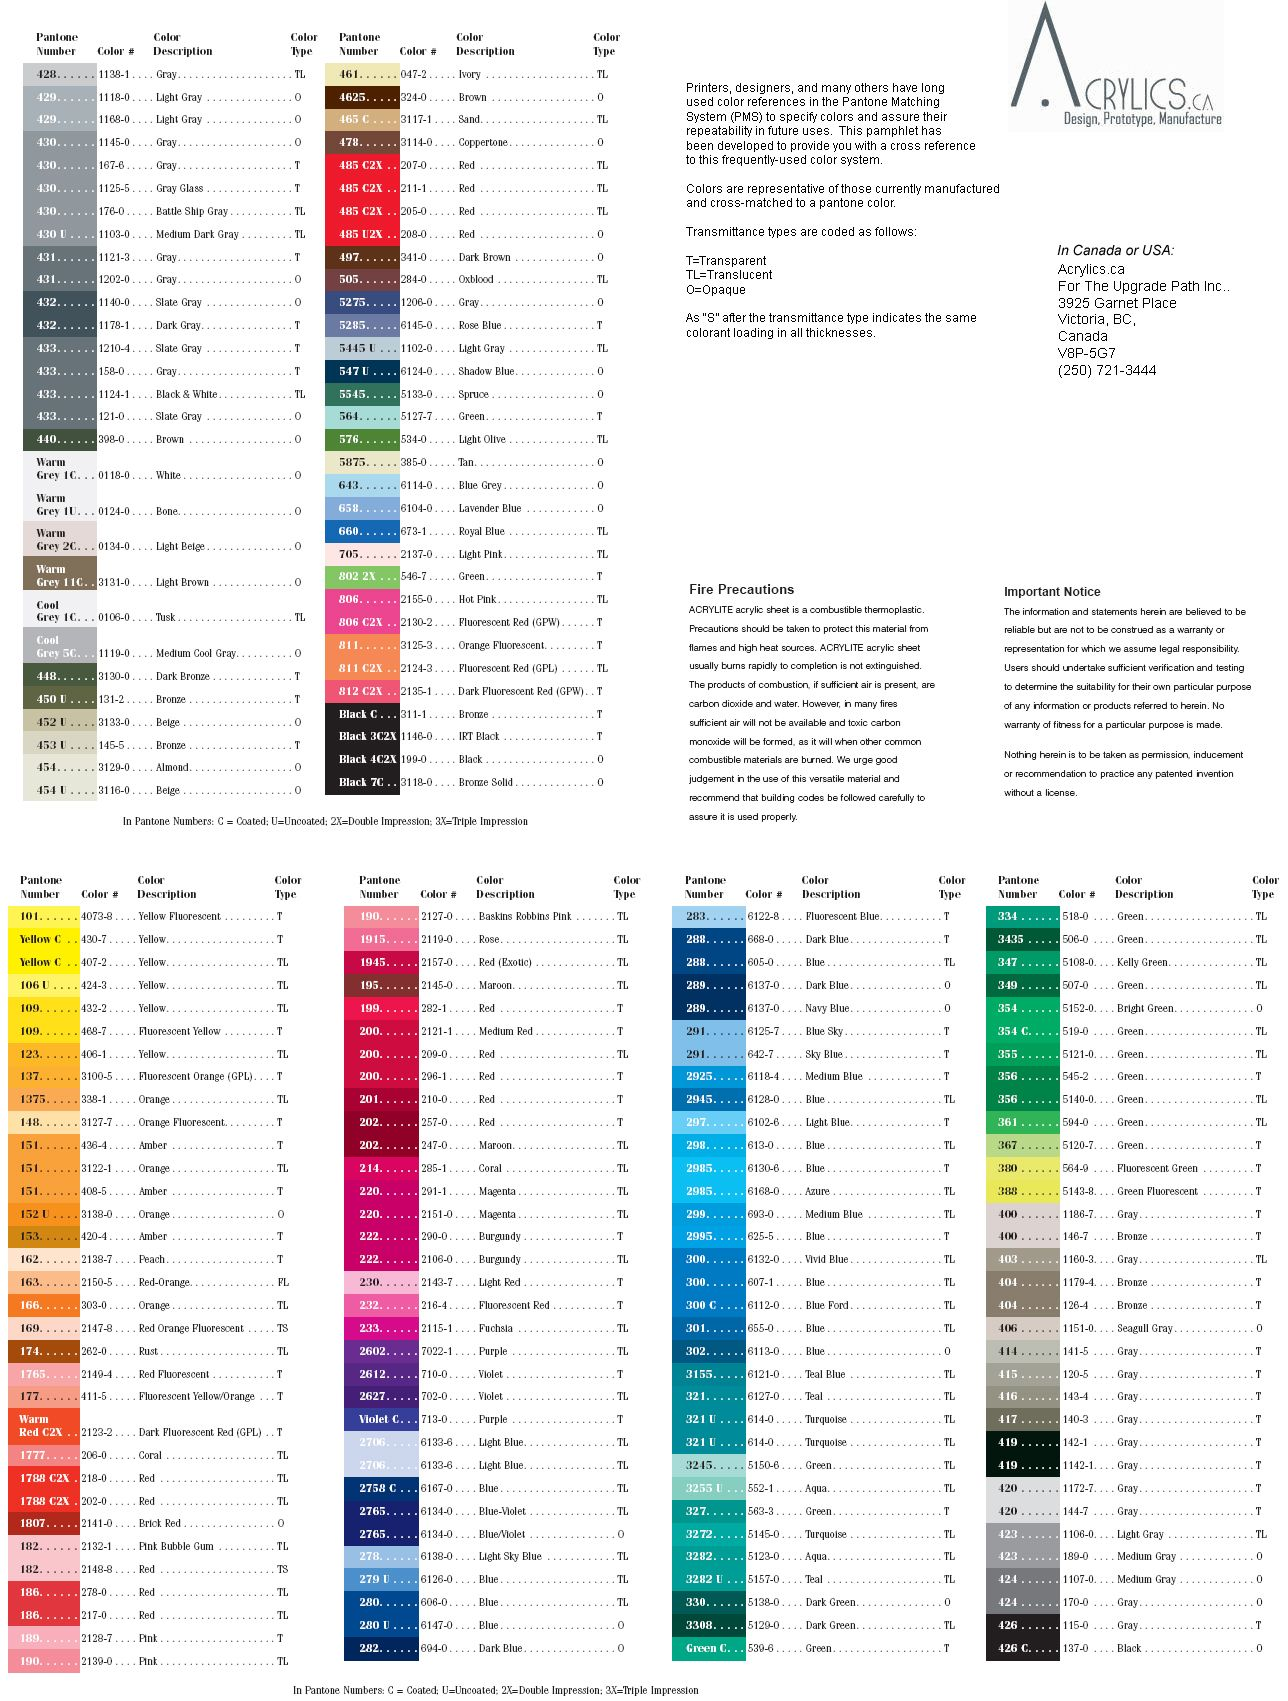 pantone ral color conversion chart pantone color chart pantone color charts and hair color. Black Bedroom Furniture Sets. Home Design Ideas